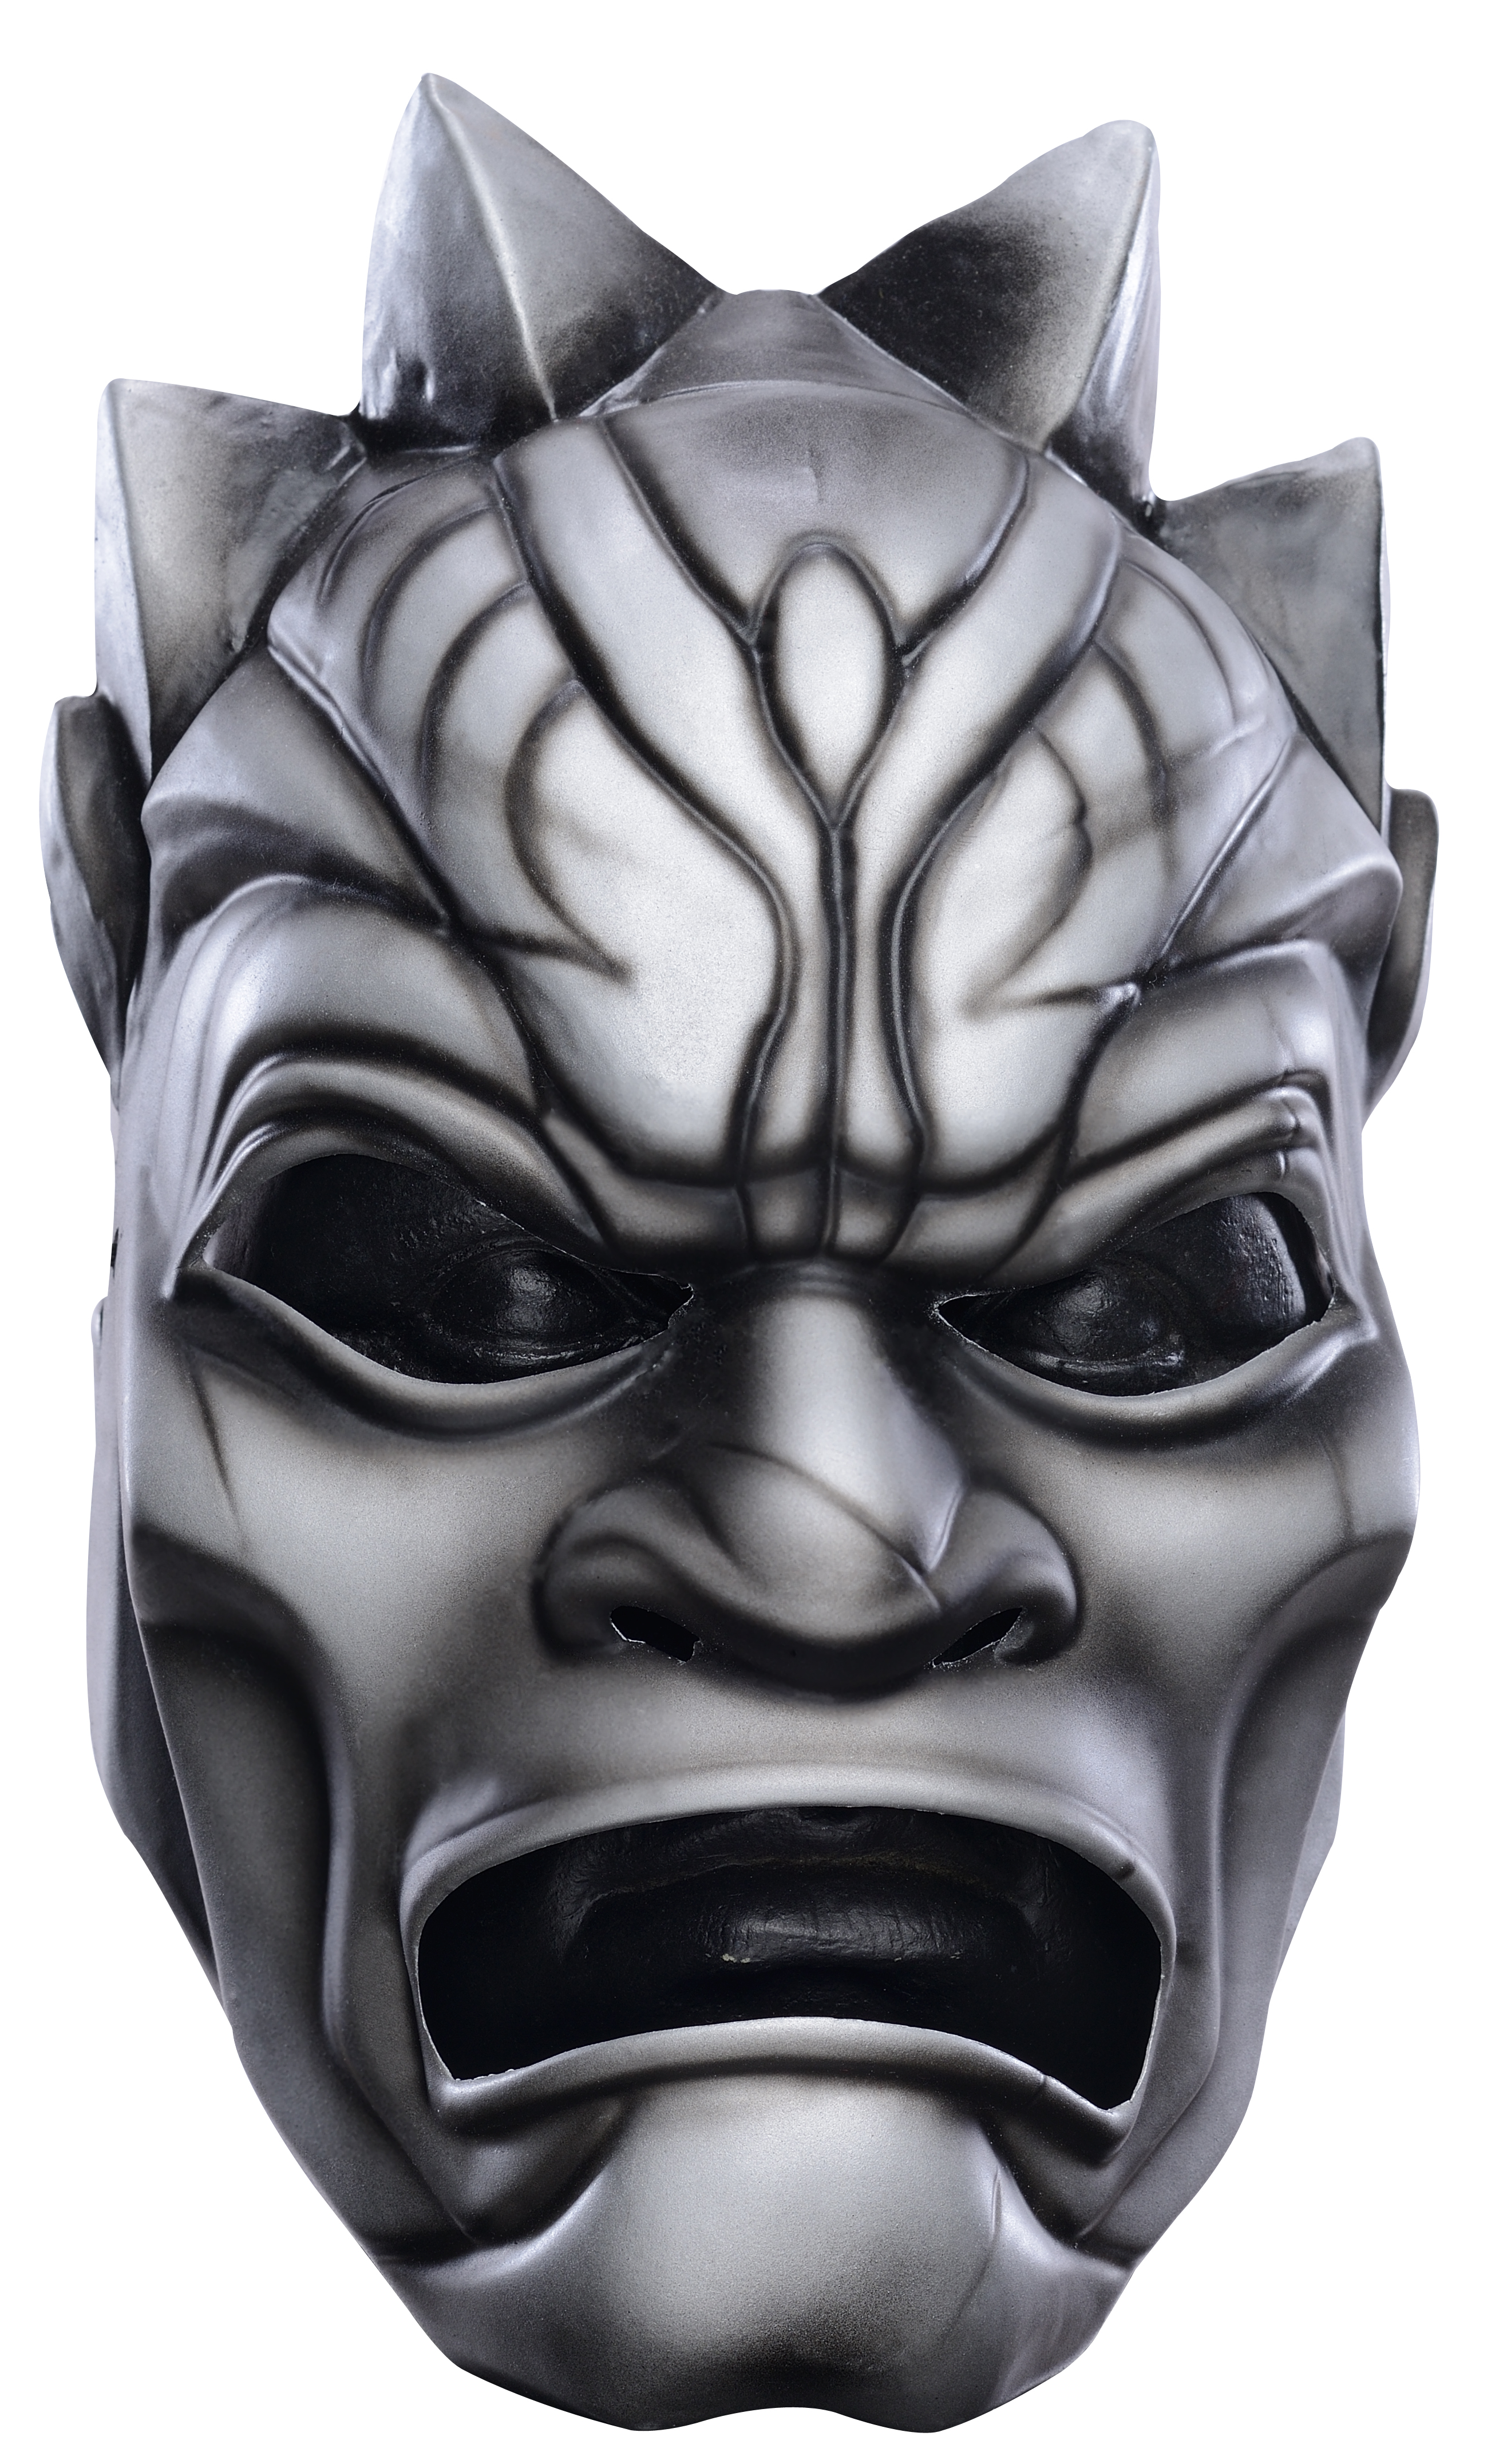 300: Rise Of An Empire Proto Samurai Mask